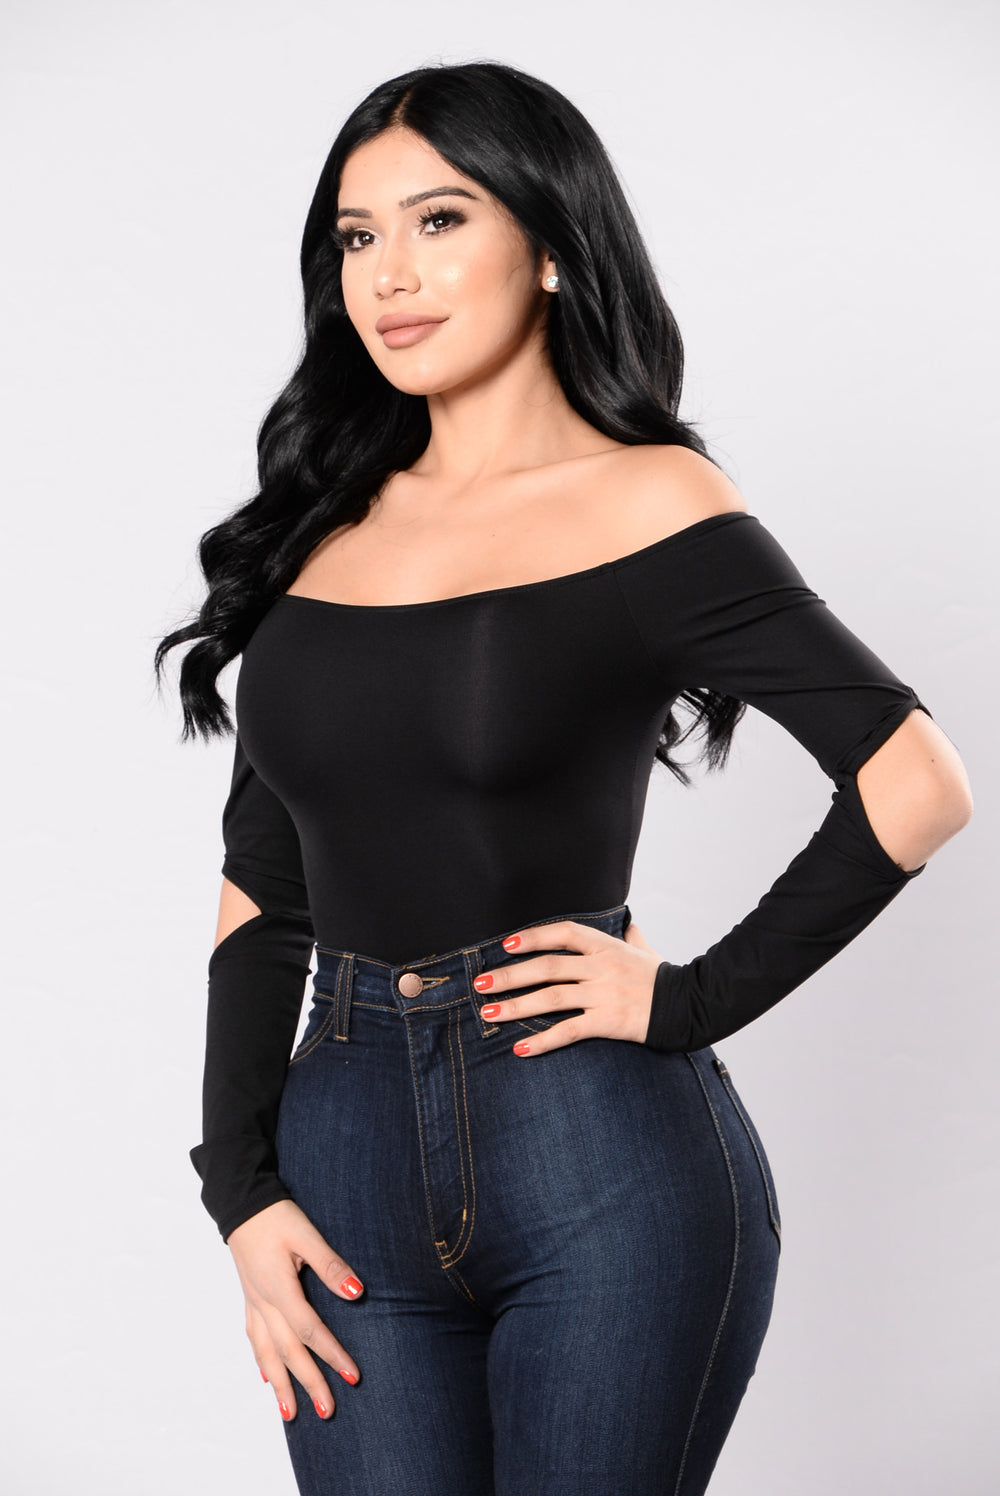 Don't Think About It Bodysuit - Black